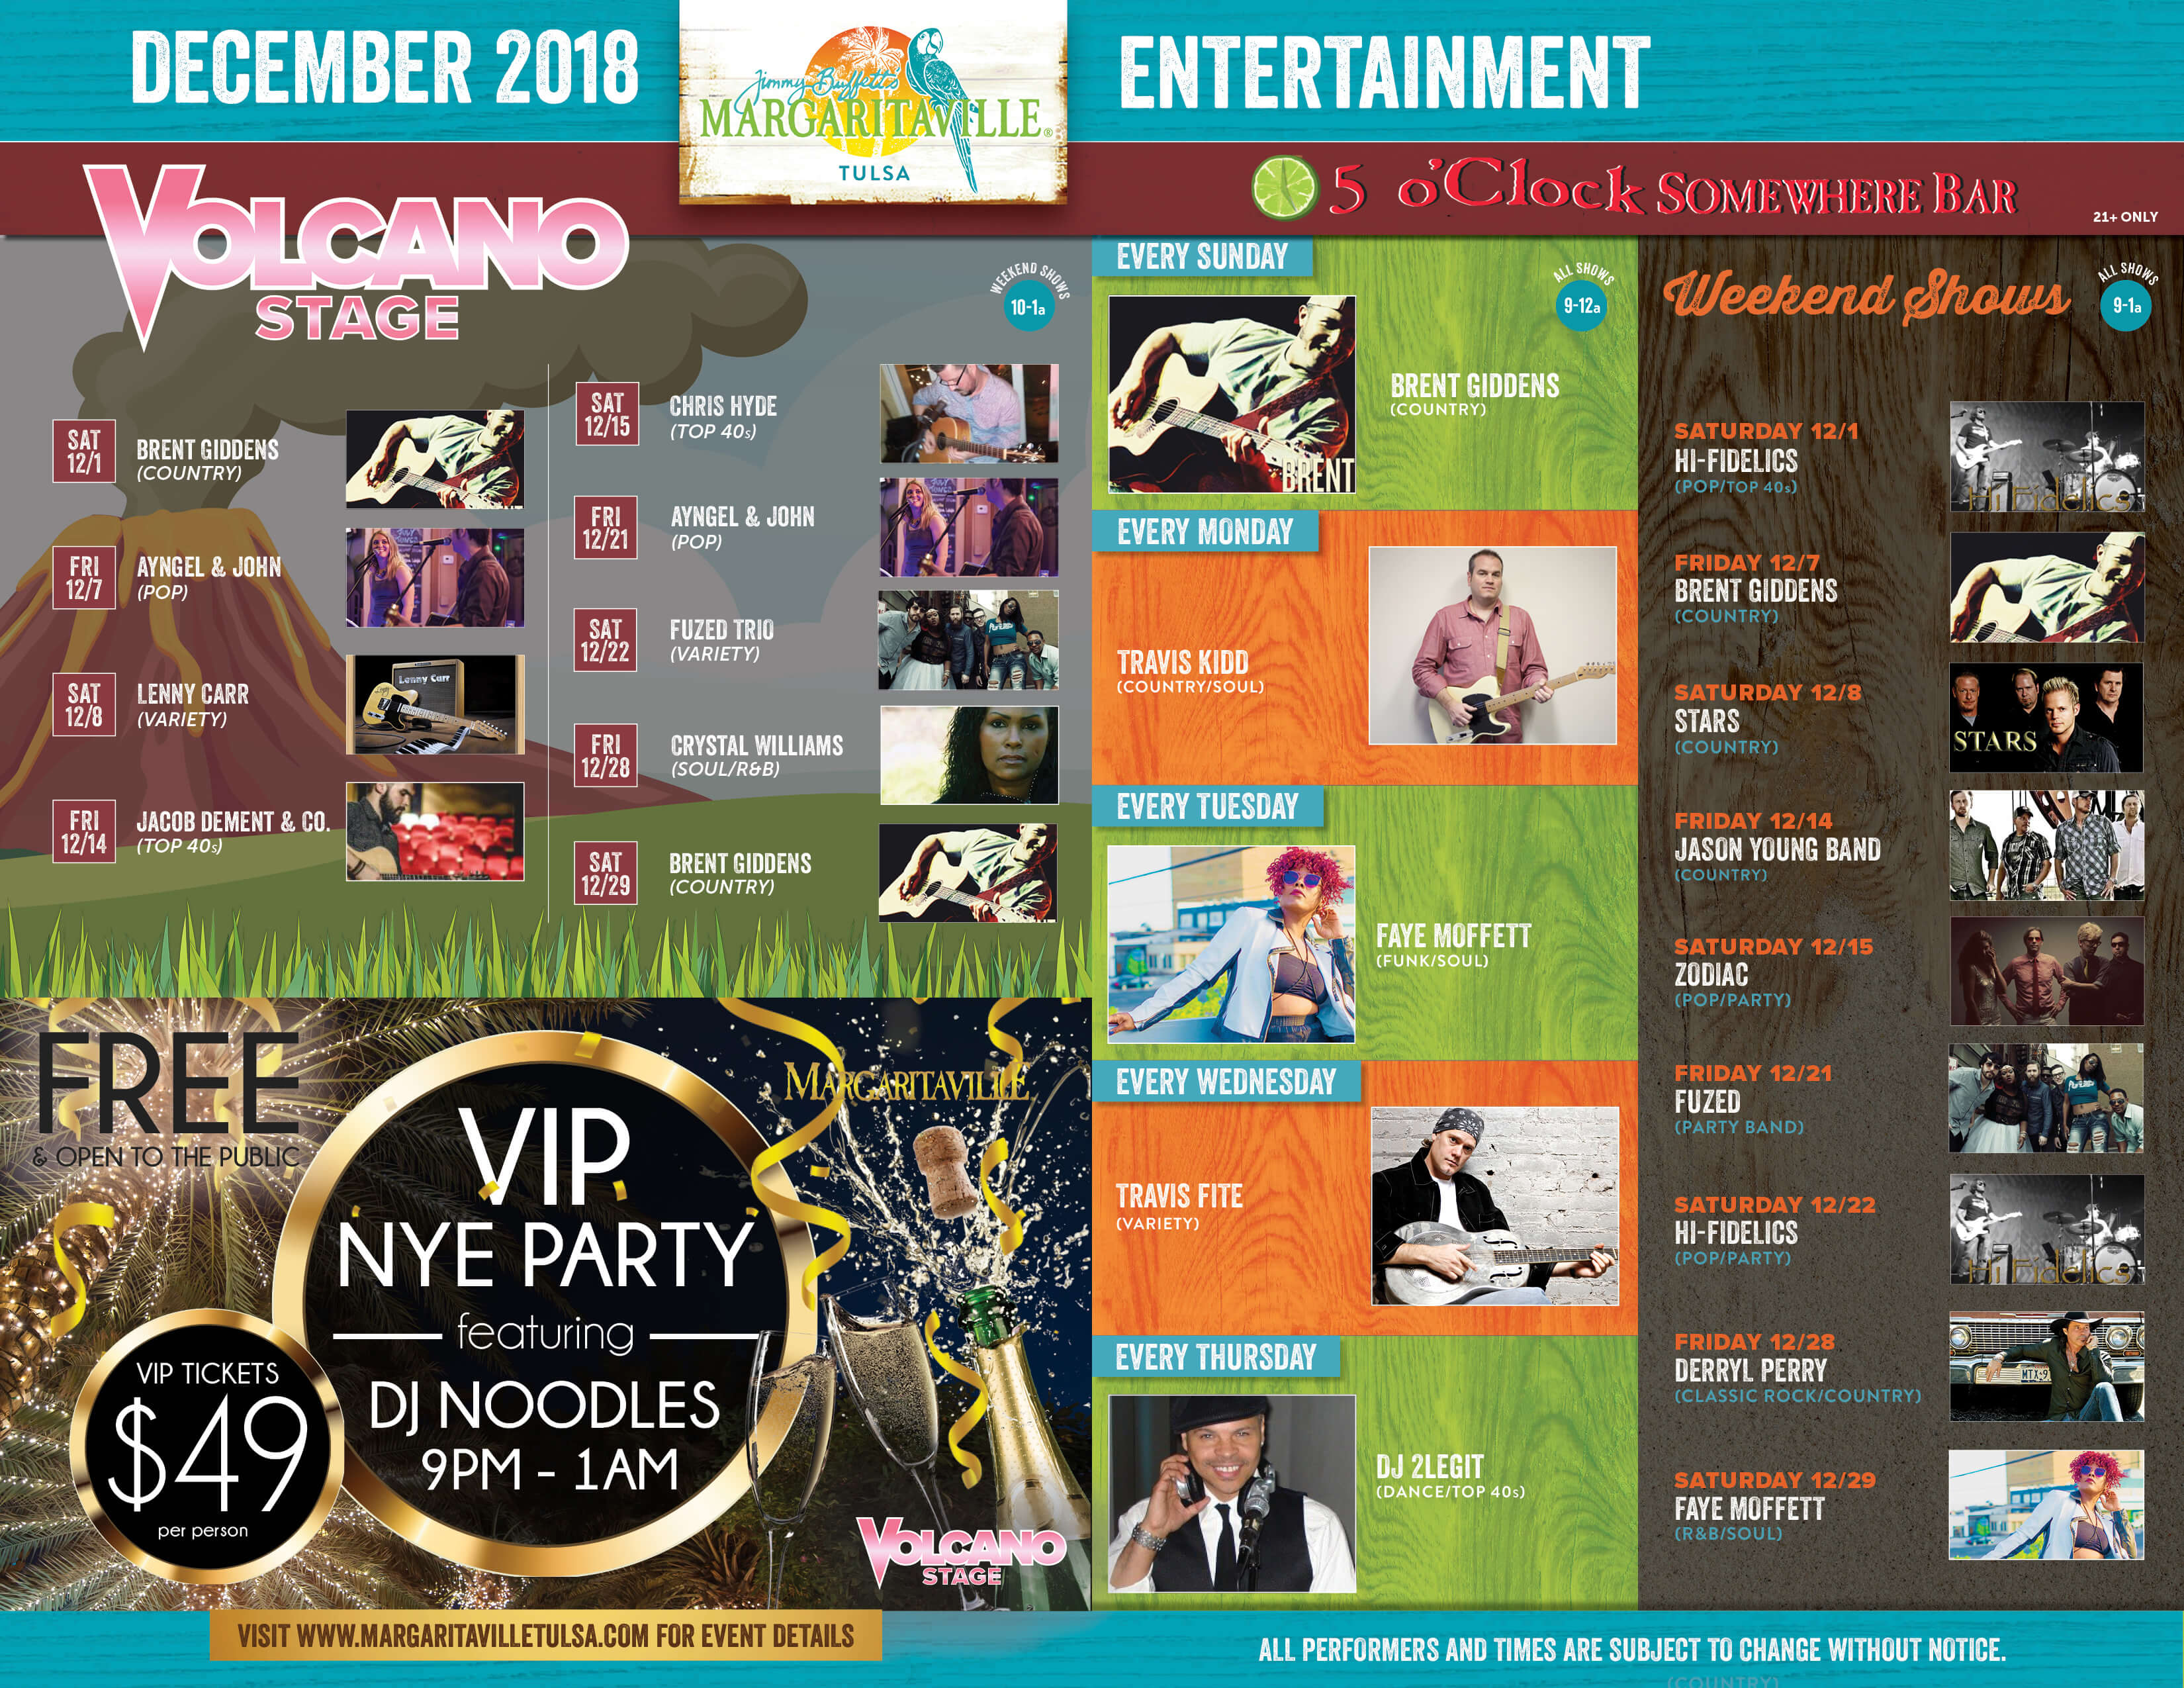 Margaritaville Tulsa December Calendar of Events